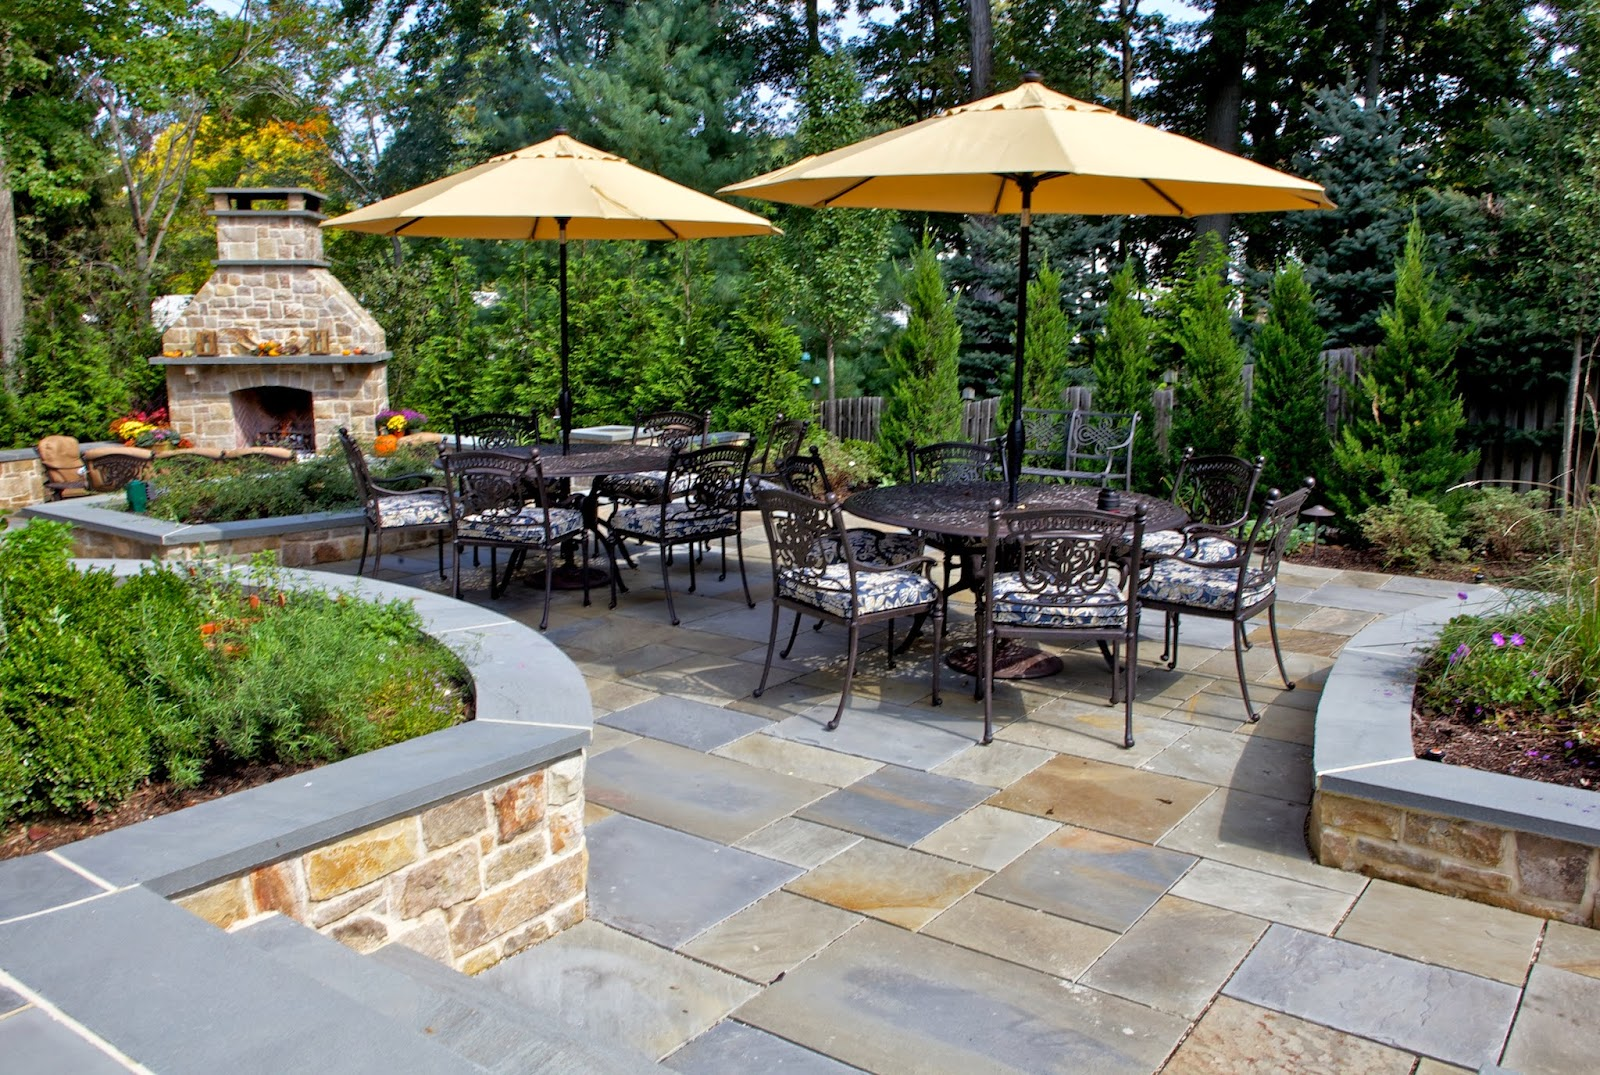 Backyard patio pavers patio design ideas for Backyard patio ideas pictures